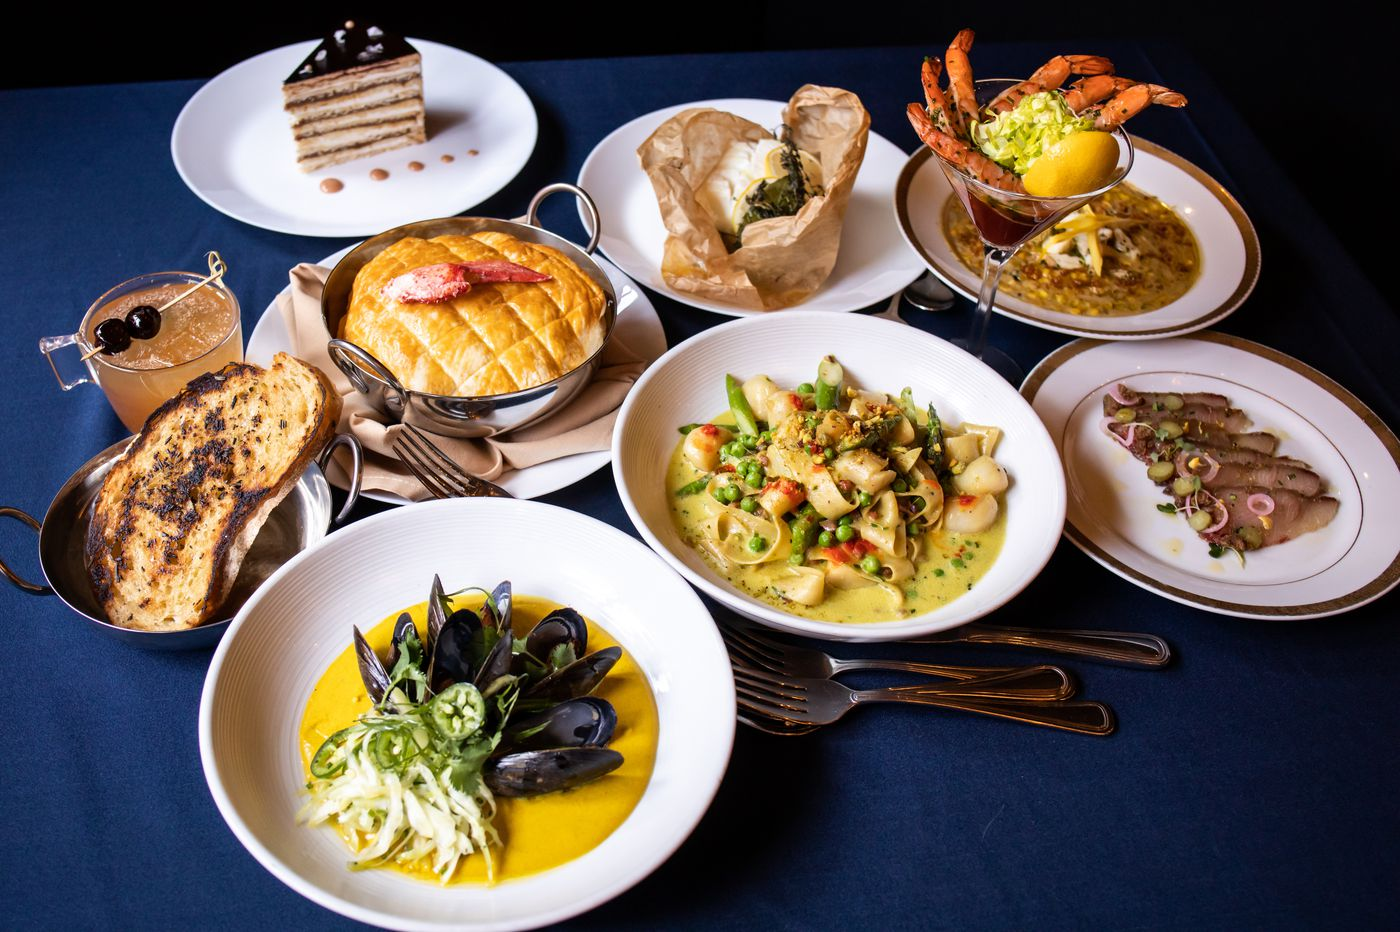 Where to get holiday takeout for the Seven Fishes, Christmas Day, and New Year's Eve